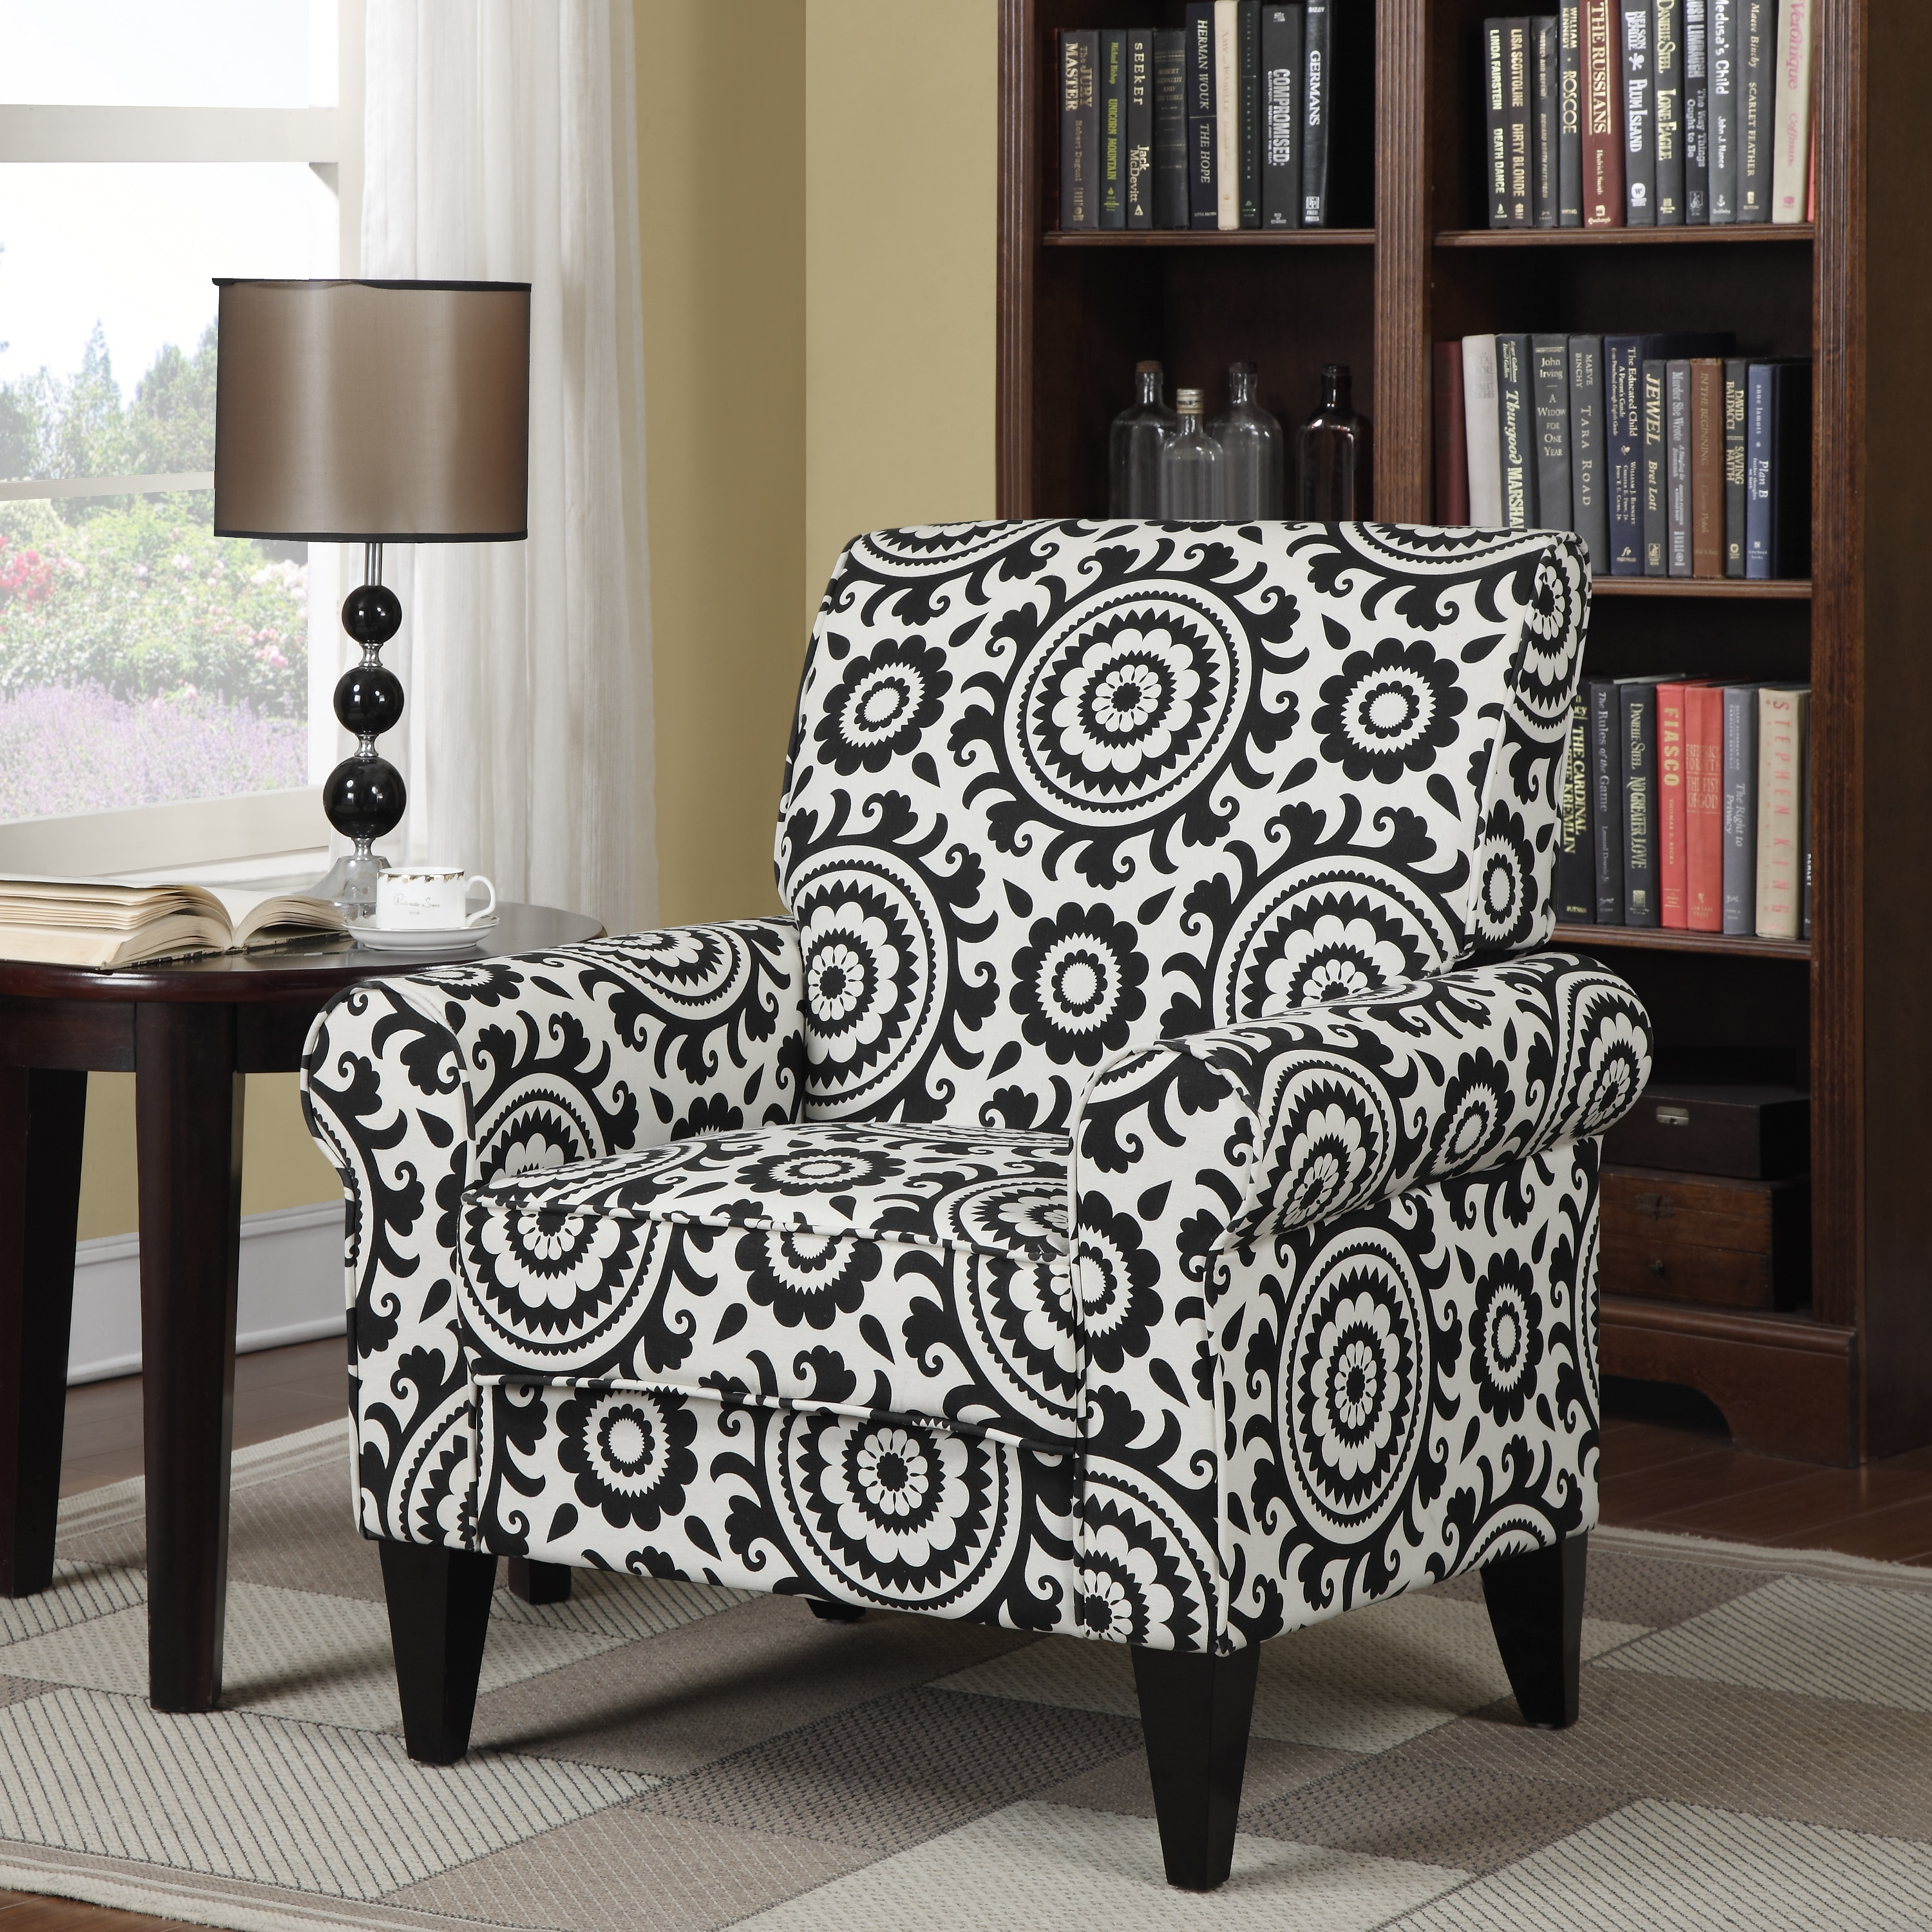 Shop Clay Alder Home Union Black Medallion Arm Chair - On Sale - Free Shipping Today - Overstock.com - 20255031 & Shop Clay Alder Home Union Black Medallion Arm Chair - On Sale ...